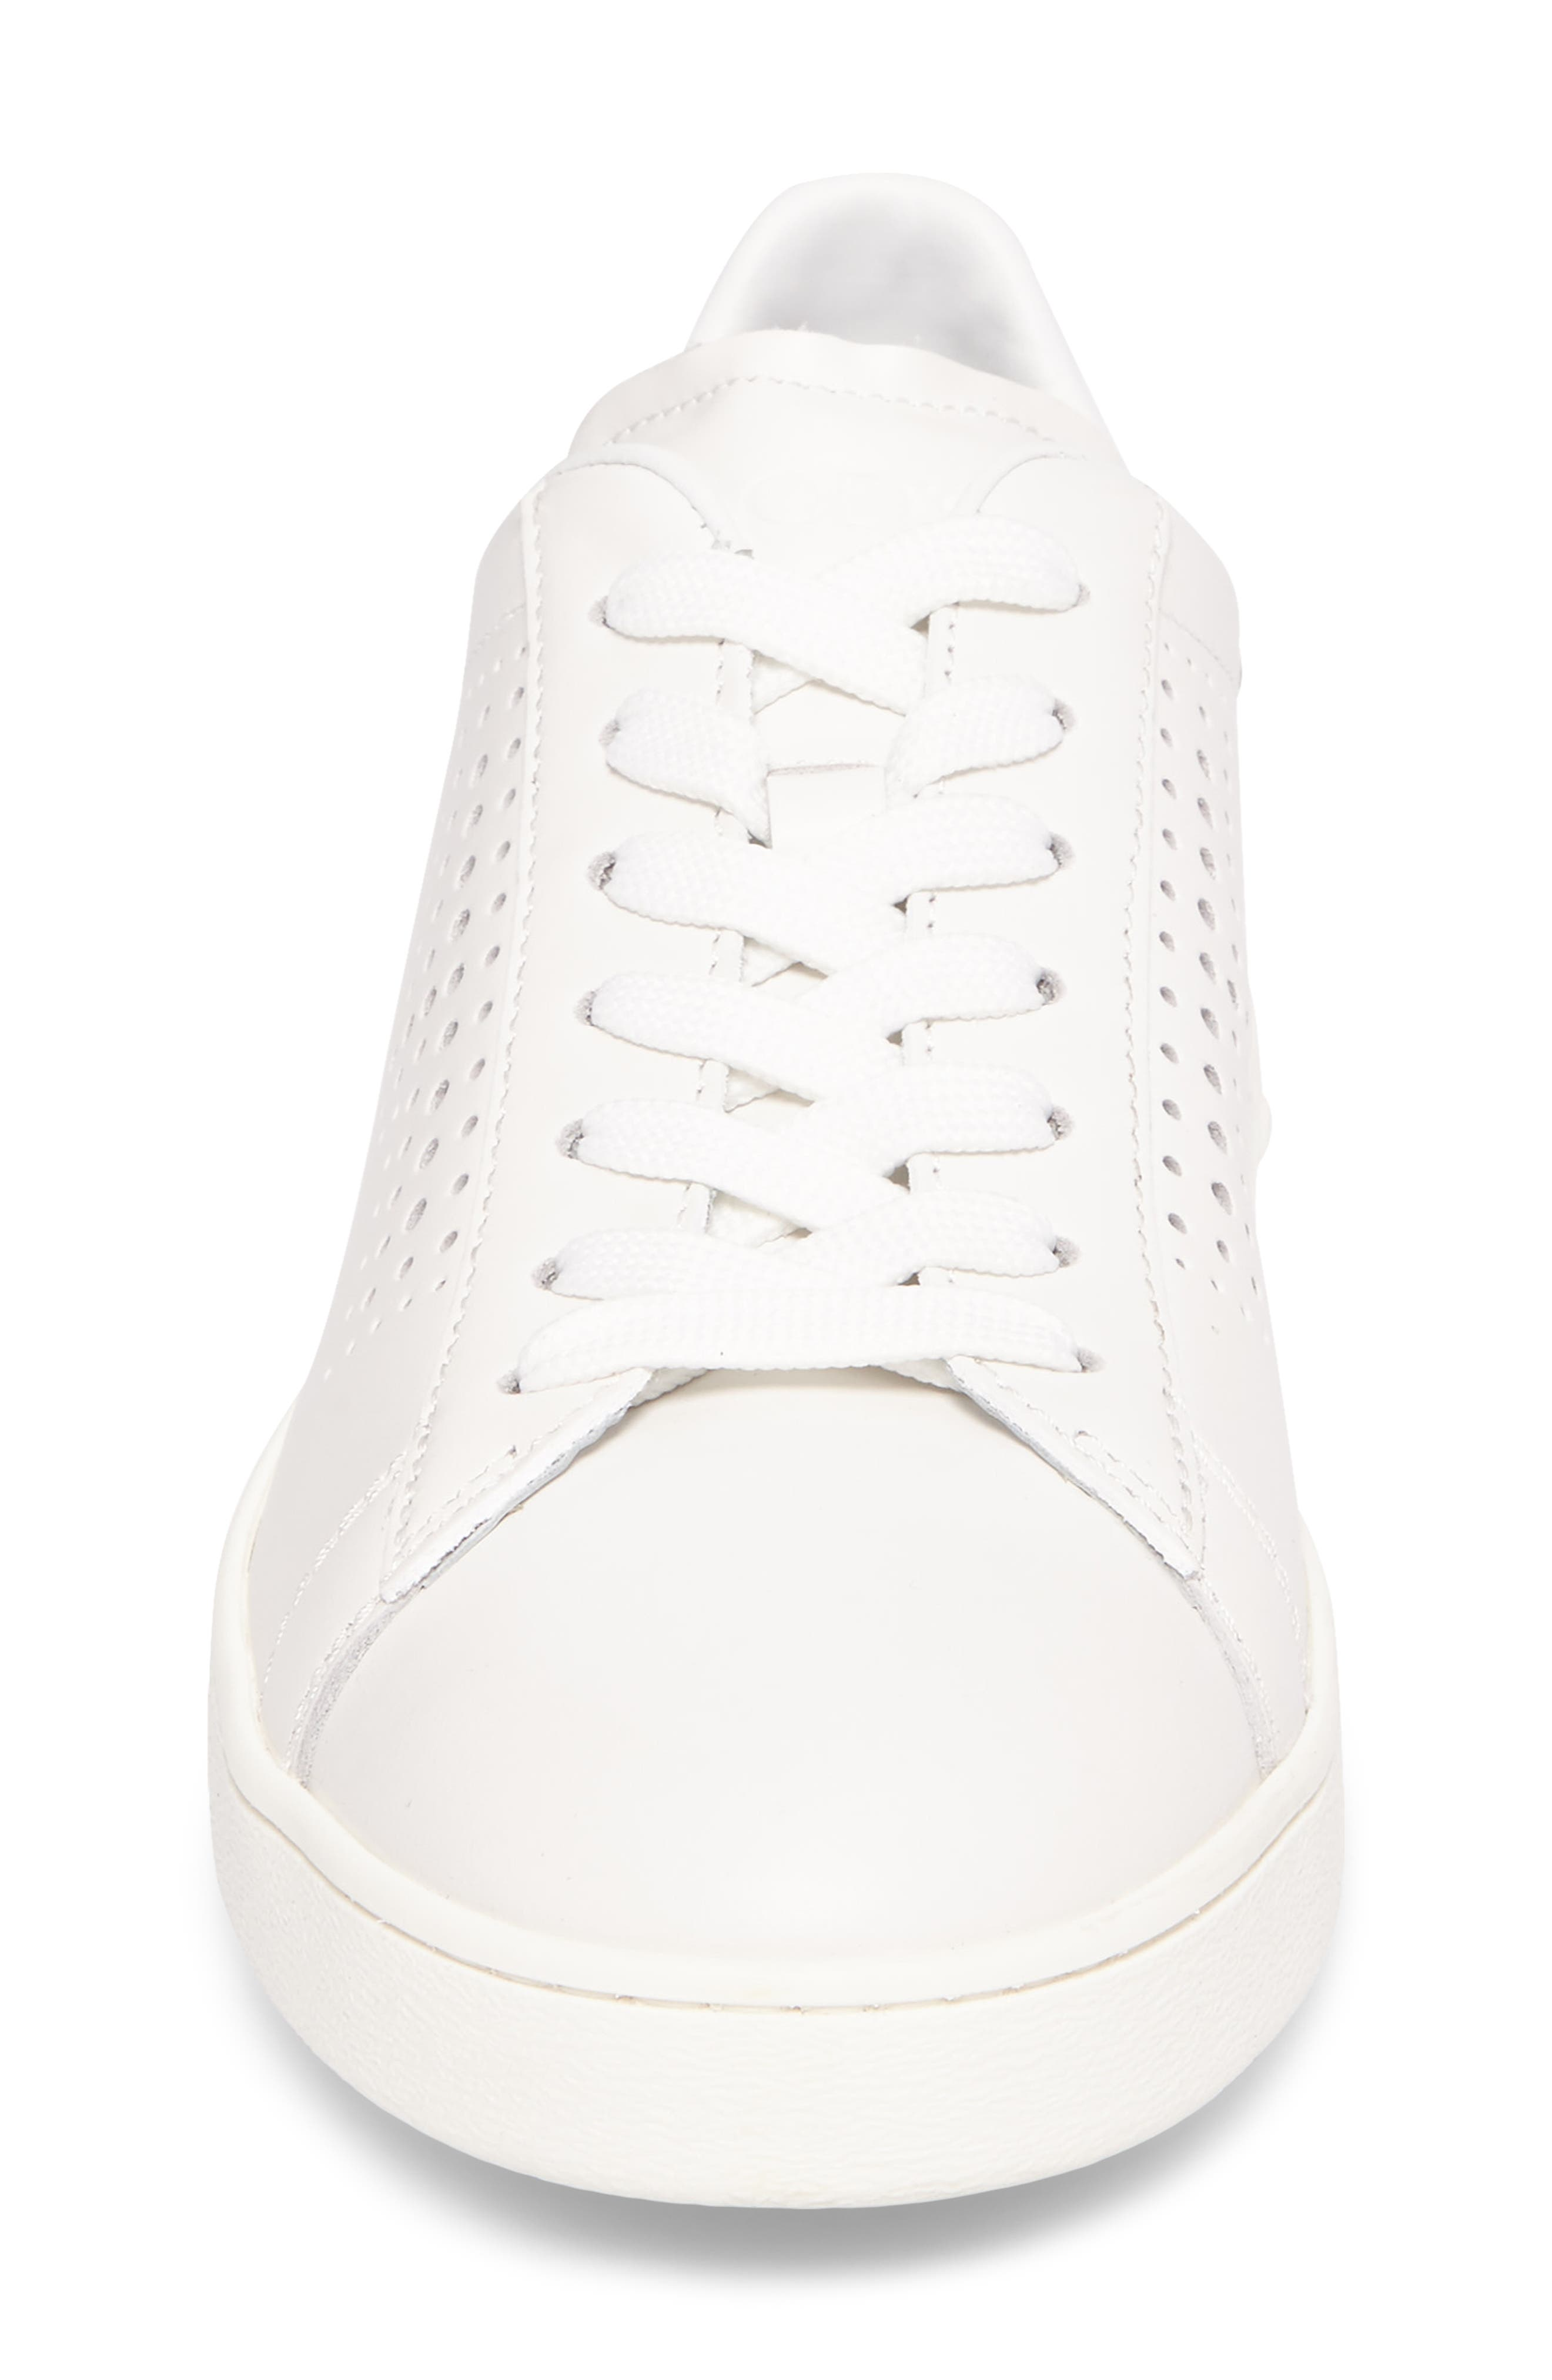 Perforated T Sneaker,                             Alternate thumbnail 4, color,                             White